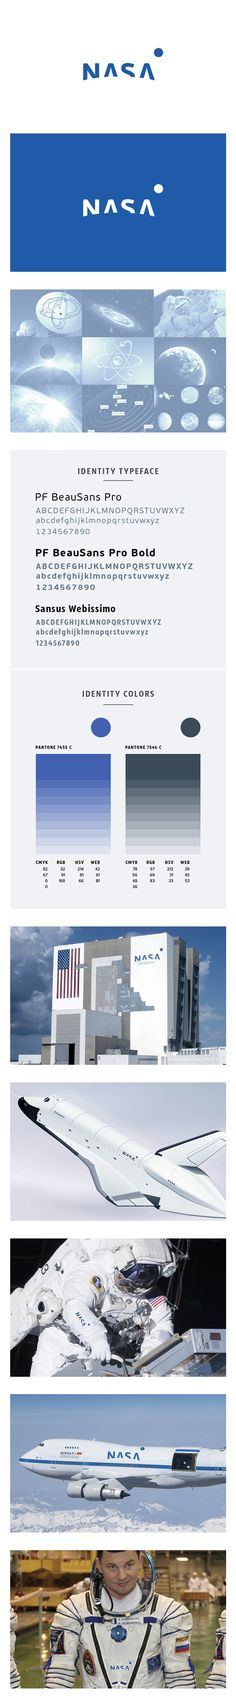 NASA on Behance